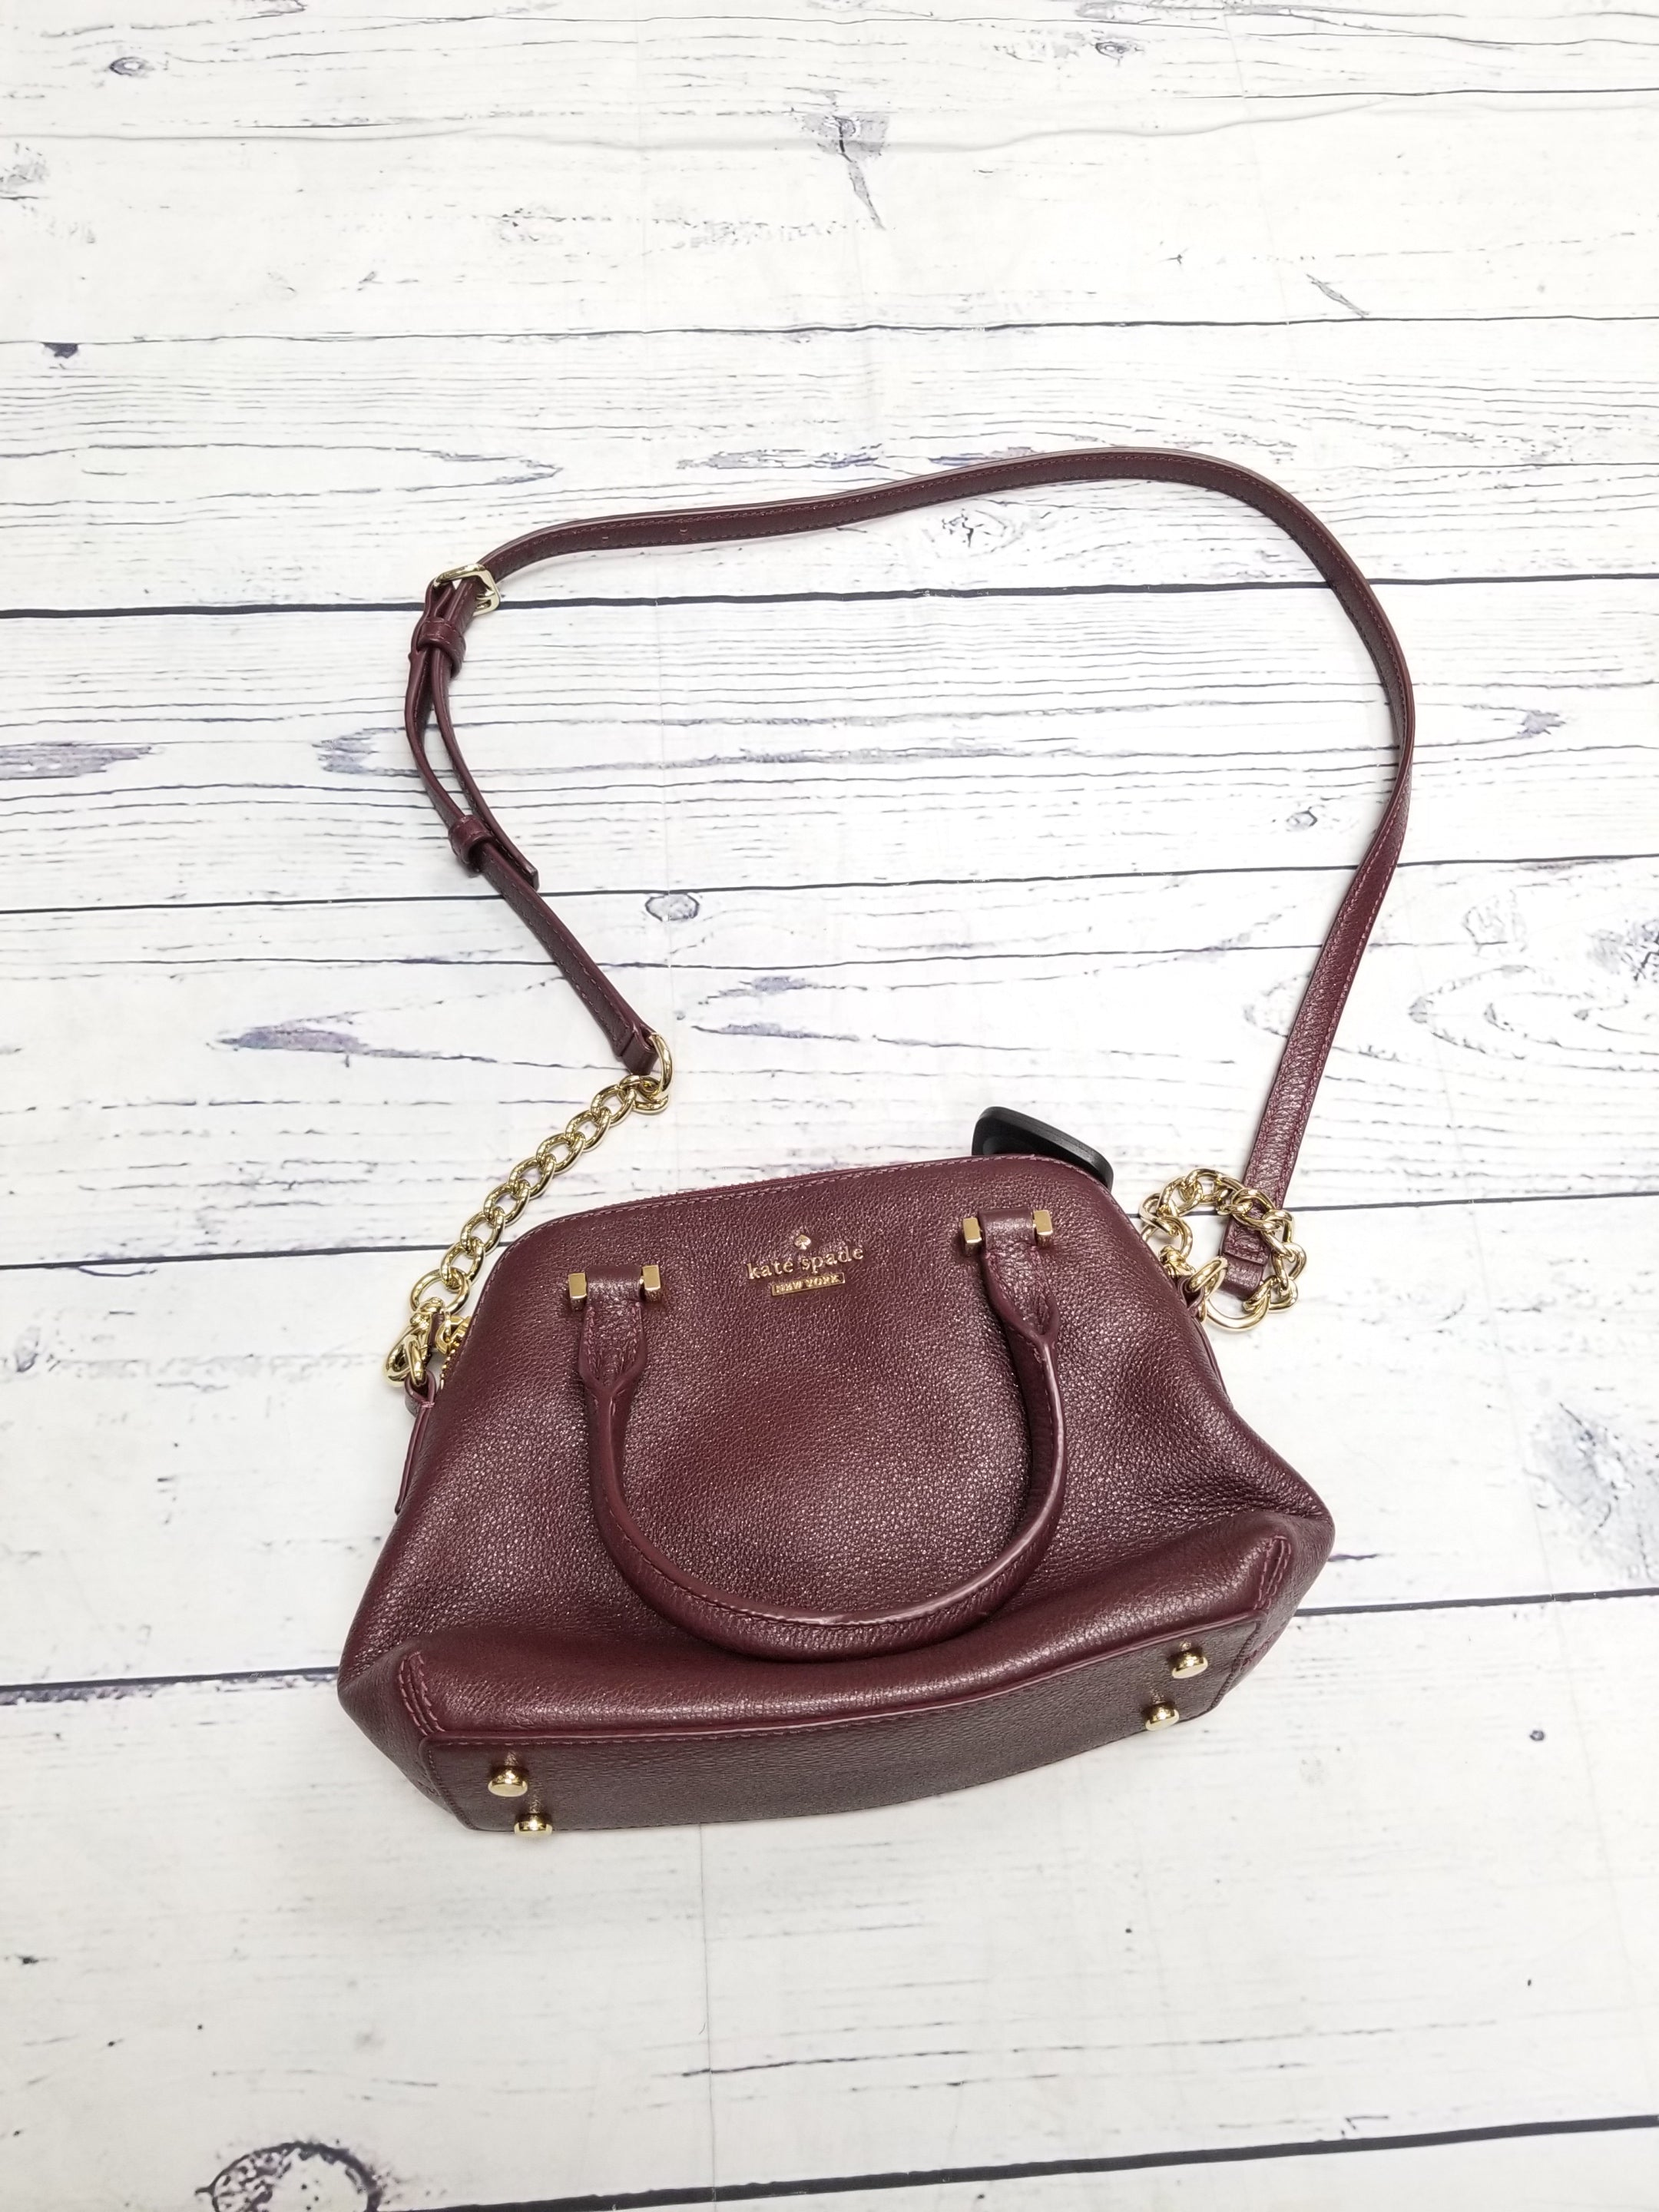 Primary Photo - BRAND: KATE SPADE <BR>STYLE: HANDBAG DESIGNER <BR>COLOR: BURGUNDY <BR>SIZE: SMALL <BR>OTHER INFO: AS IS <BR>SKU: 116-116141-4781